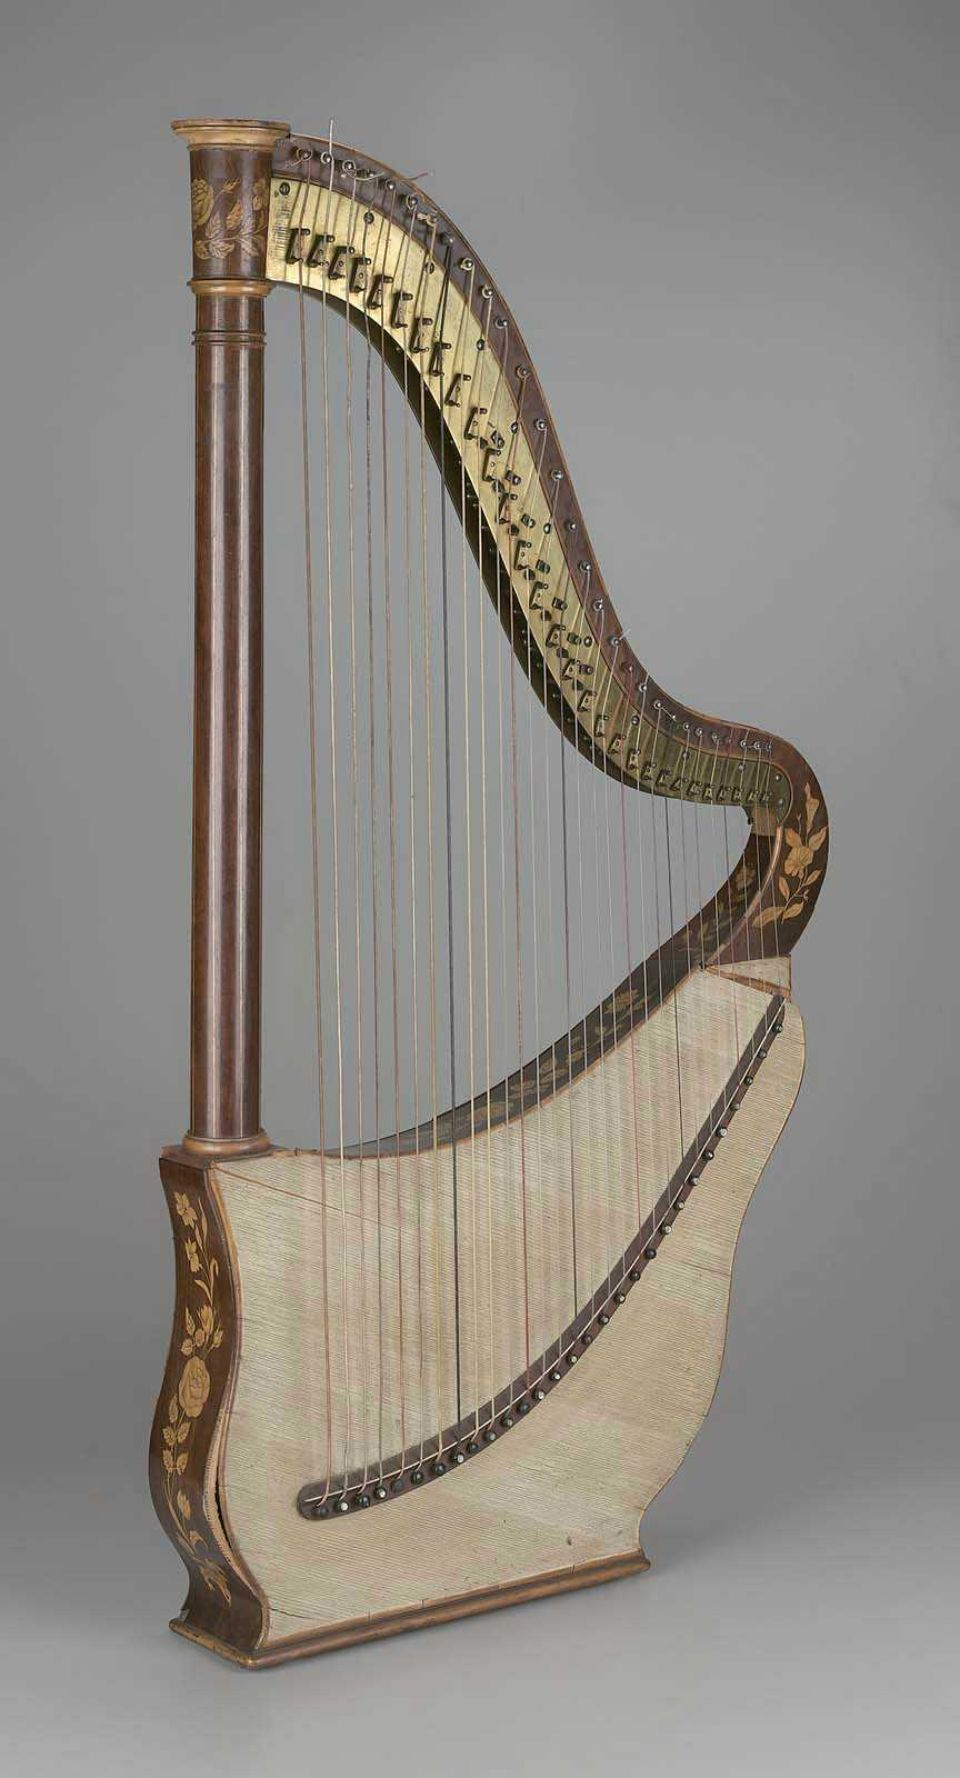 dital harp about 1830 j. pfeiffer, active 1769–1839 paris, france